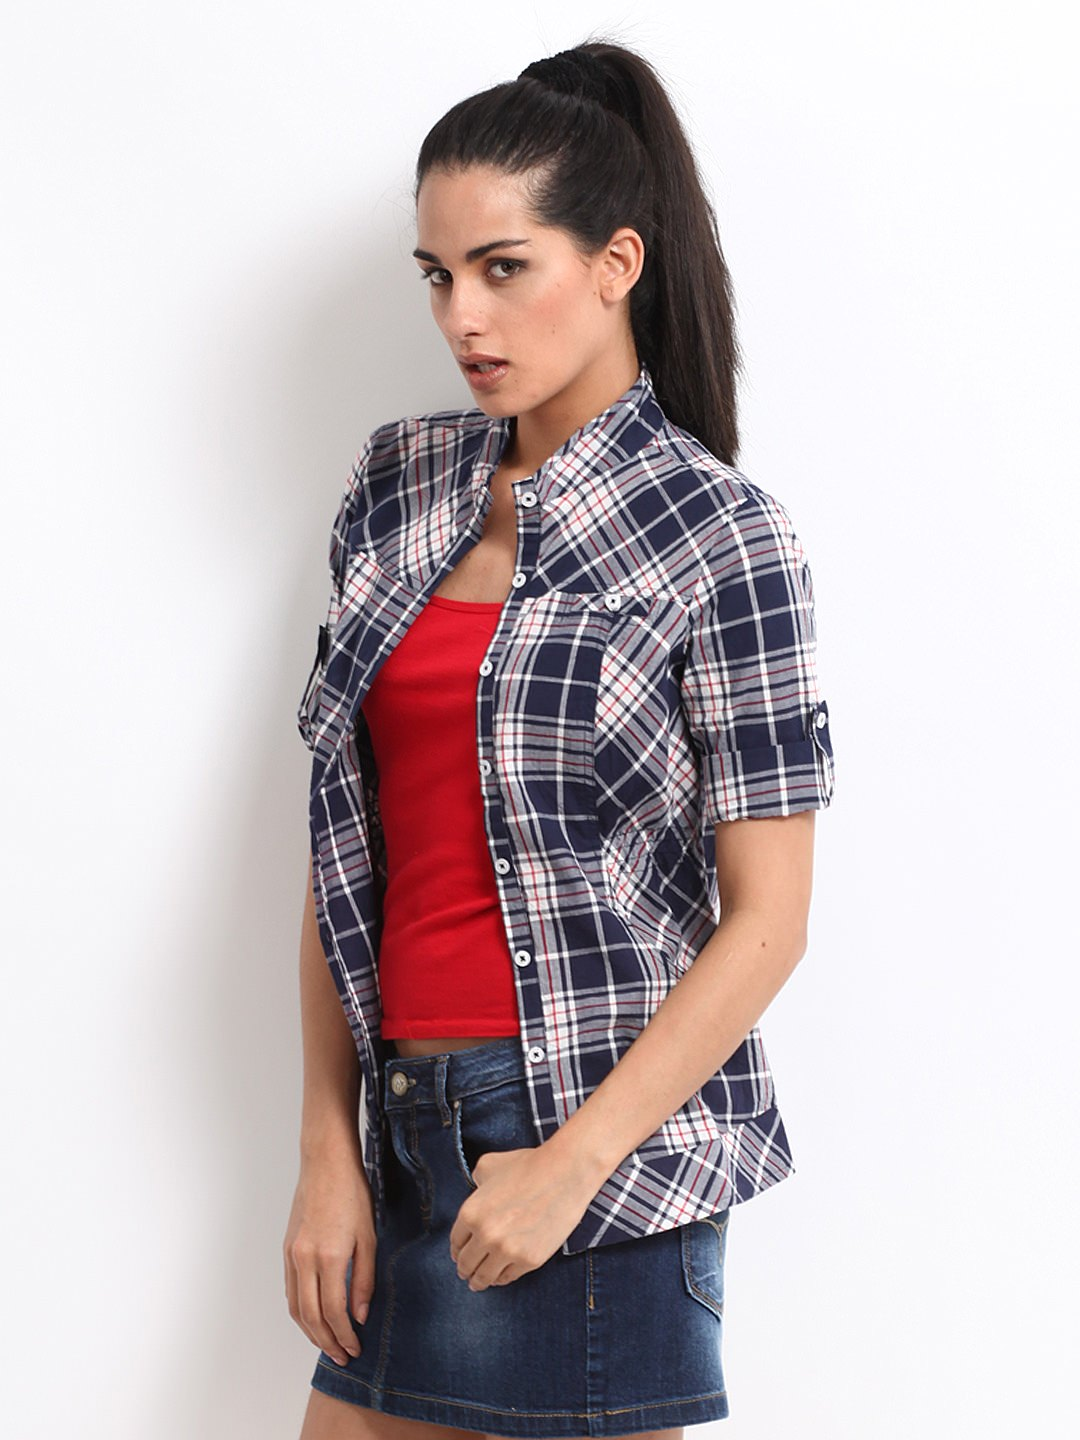 Roadster-Women-Navy-&-White-Checked-Shirt_ Ladies Tops and Shirts By Best Brands